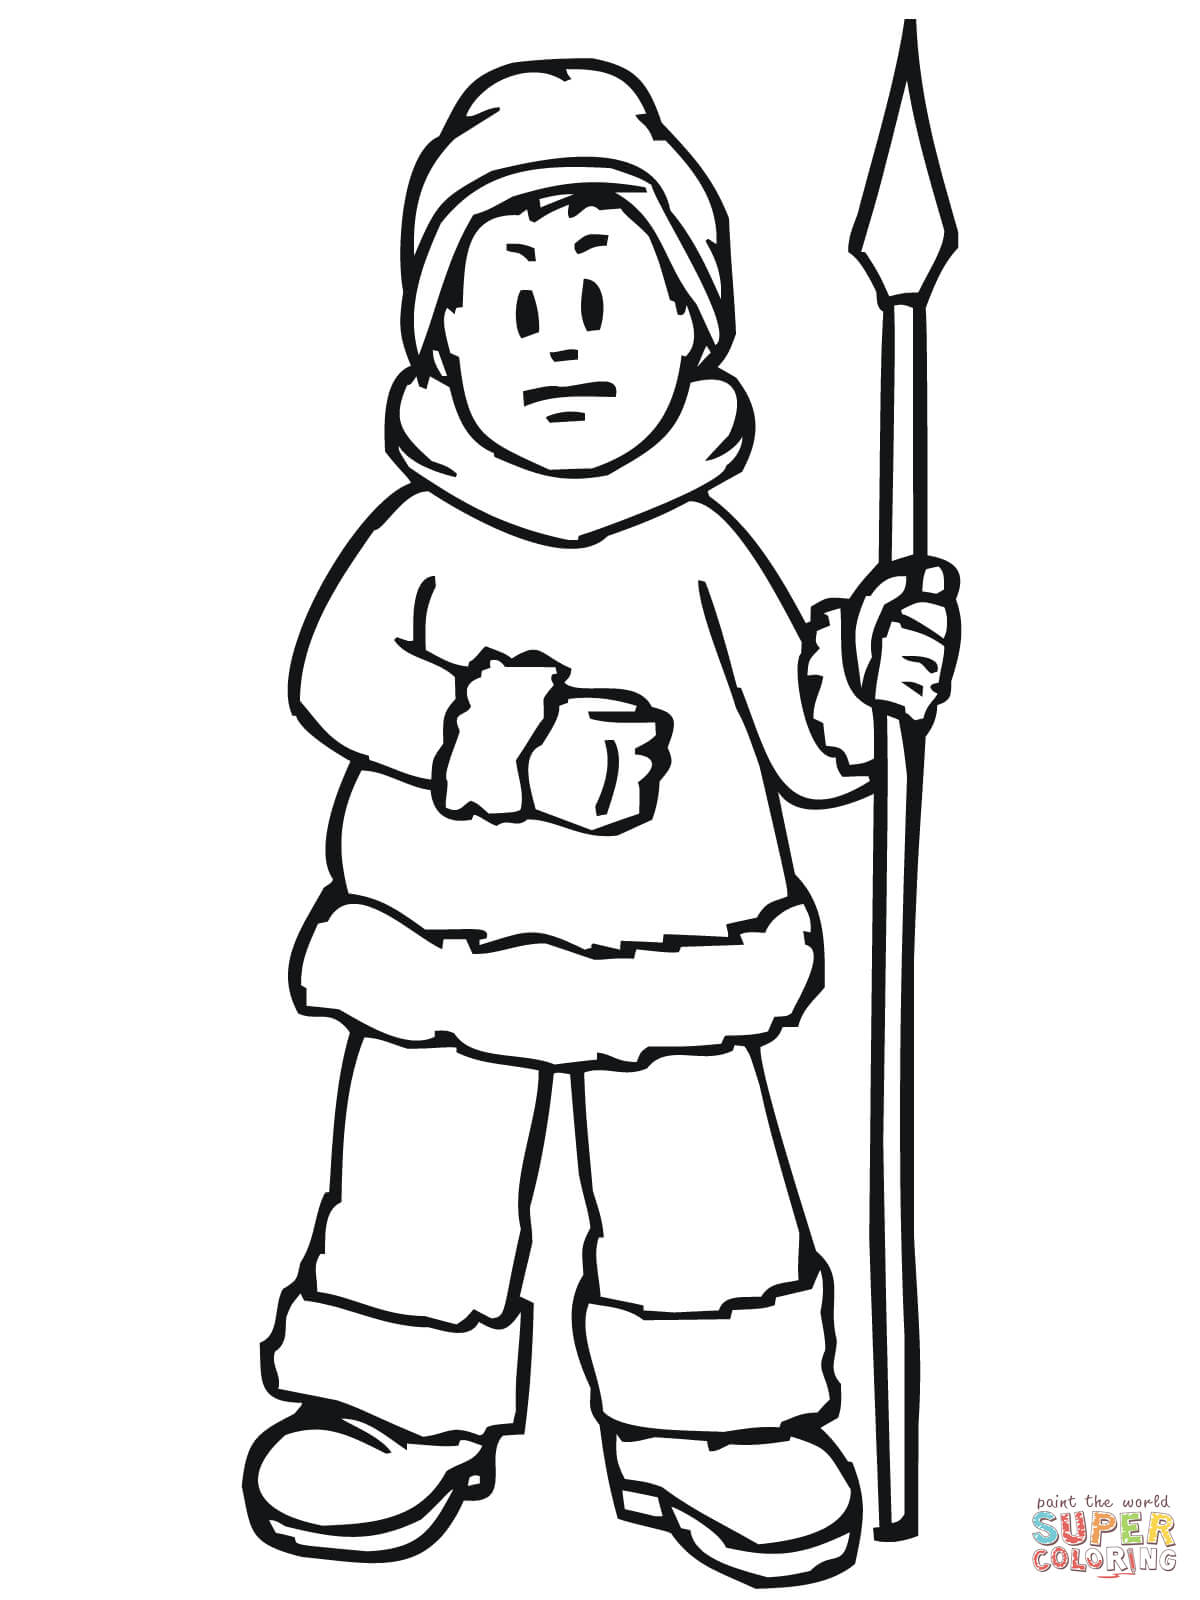 Eskimo clipart hunting Pages coloring Pages Coloring Inuit